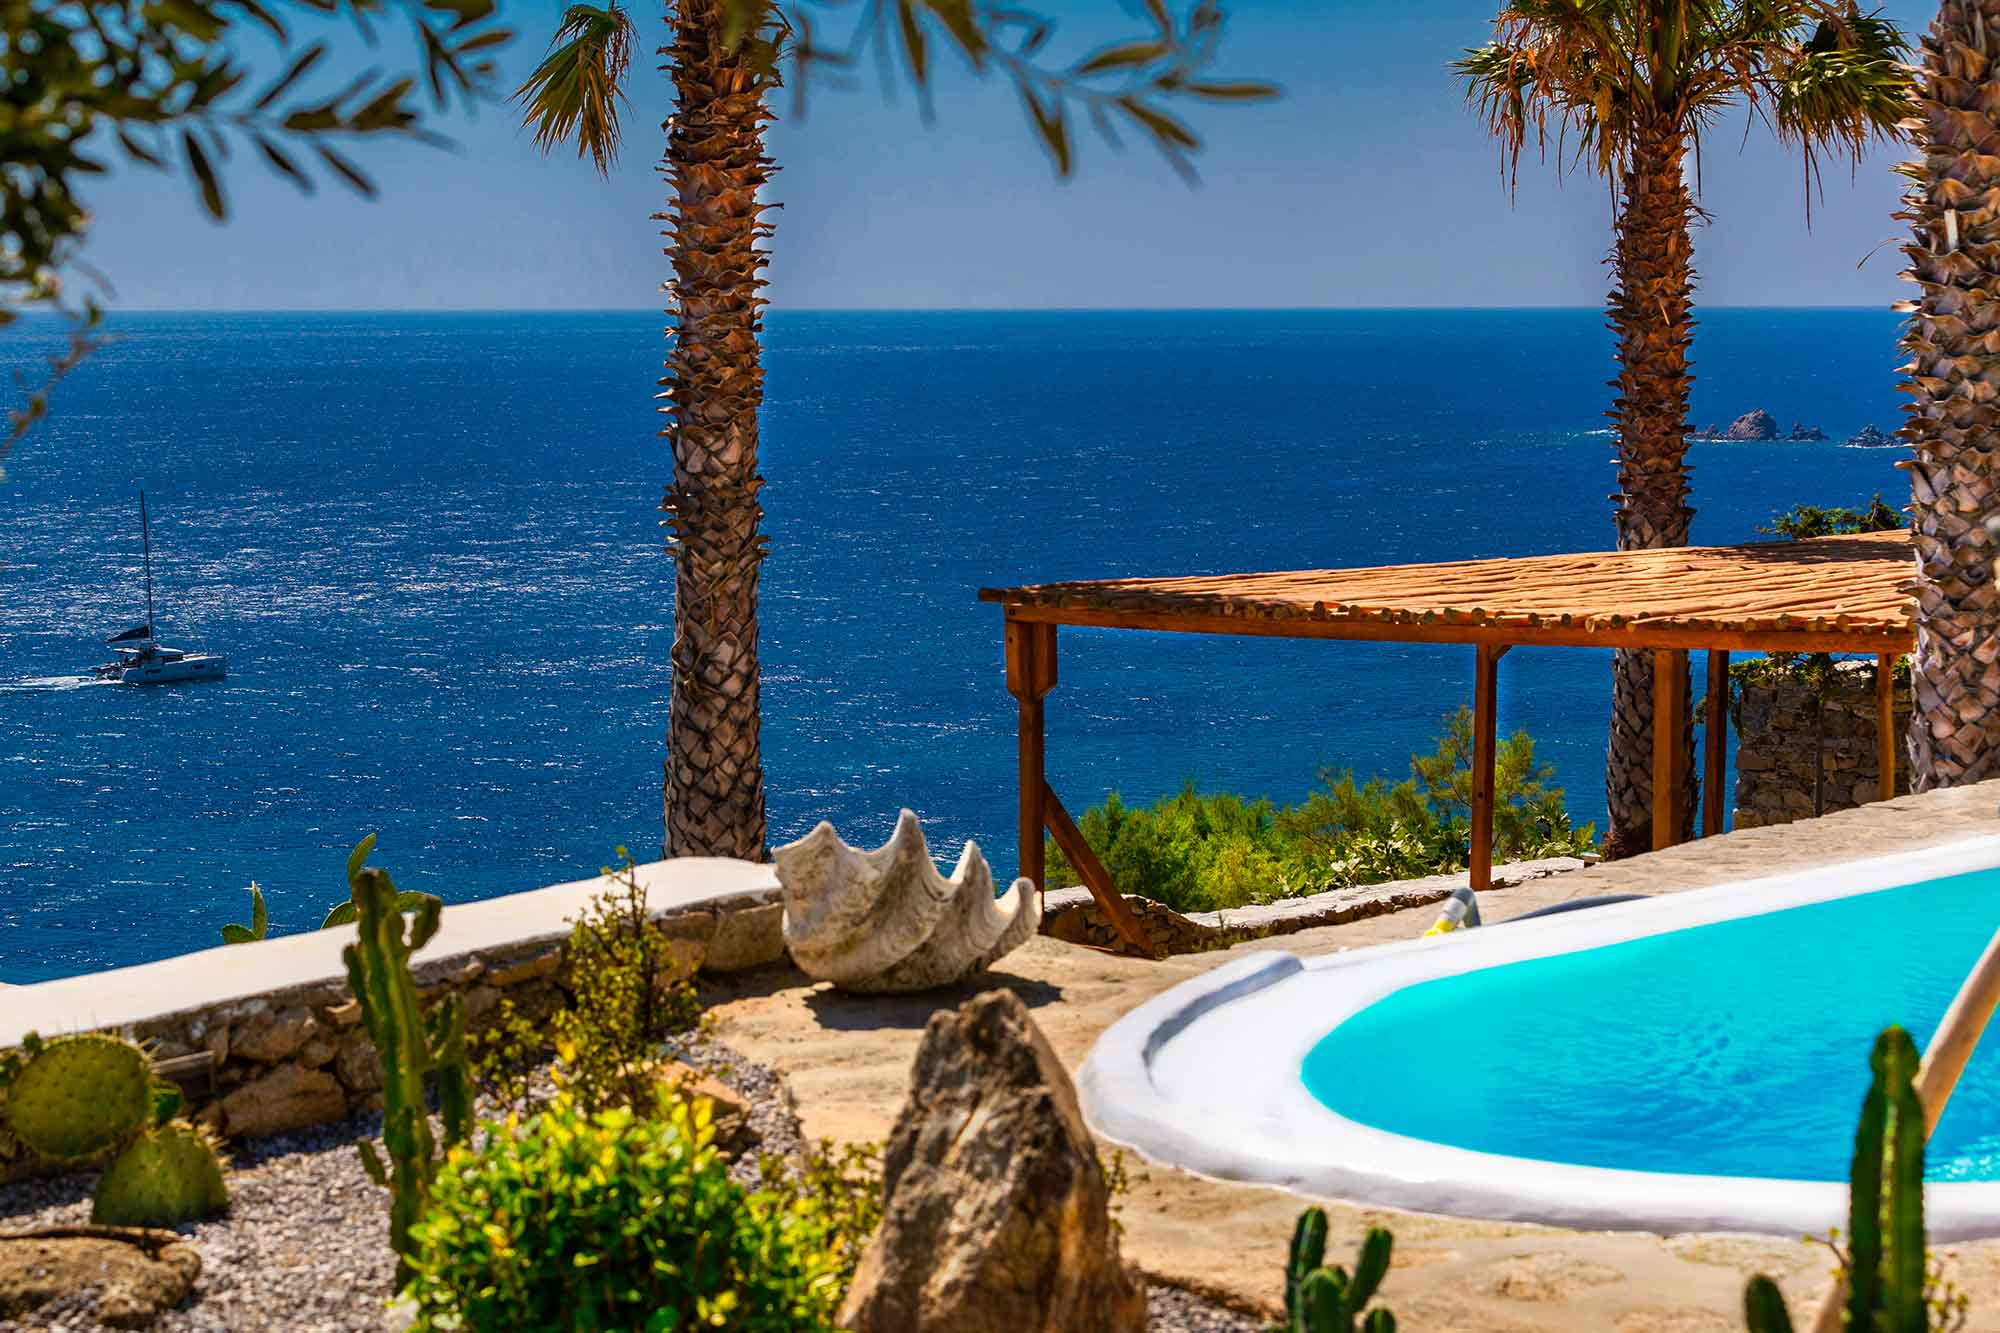 RENT A LUXURIOUS VILLA BY THE SEA IN MYKONOS - VILLA KARKOS - sea view